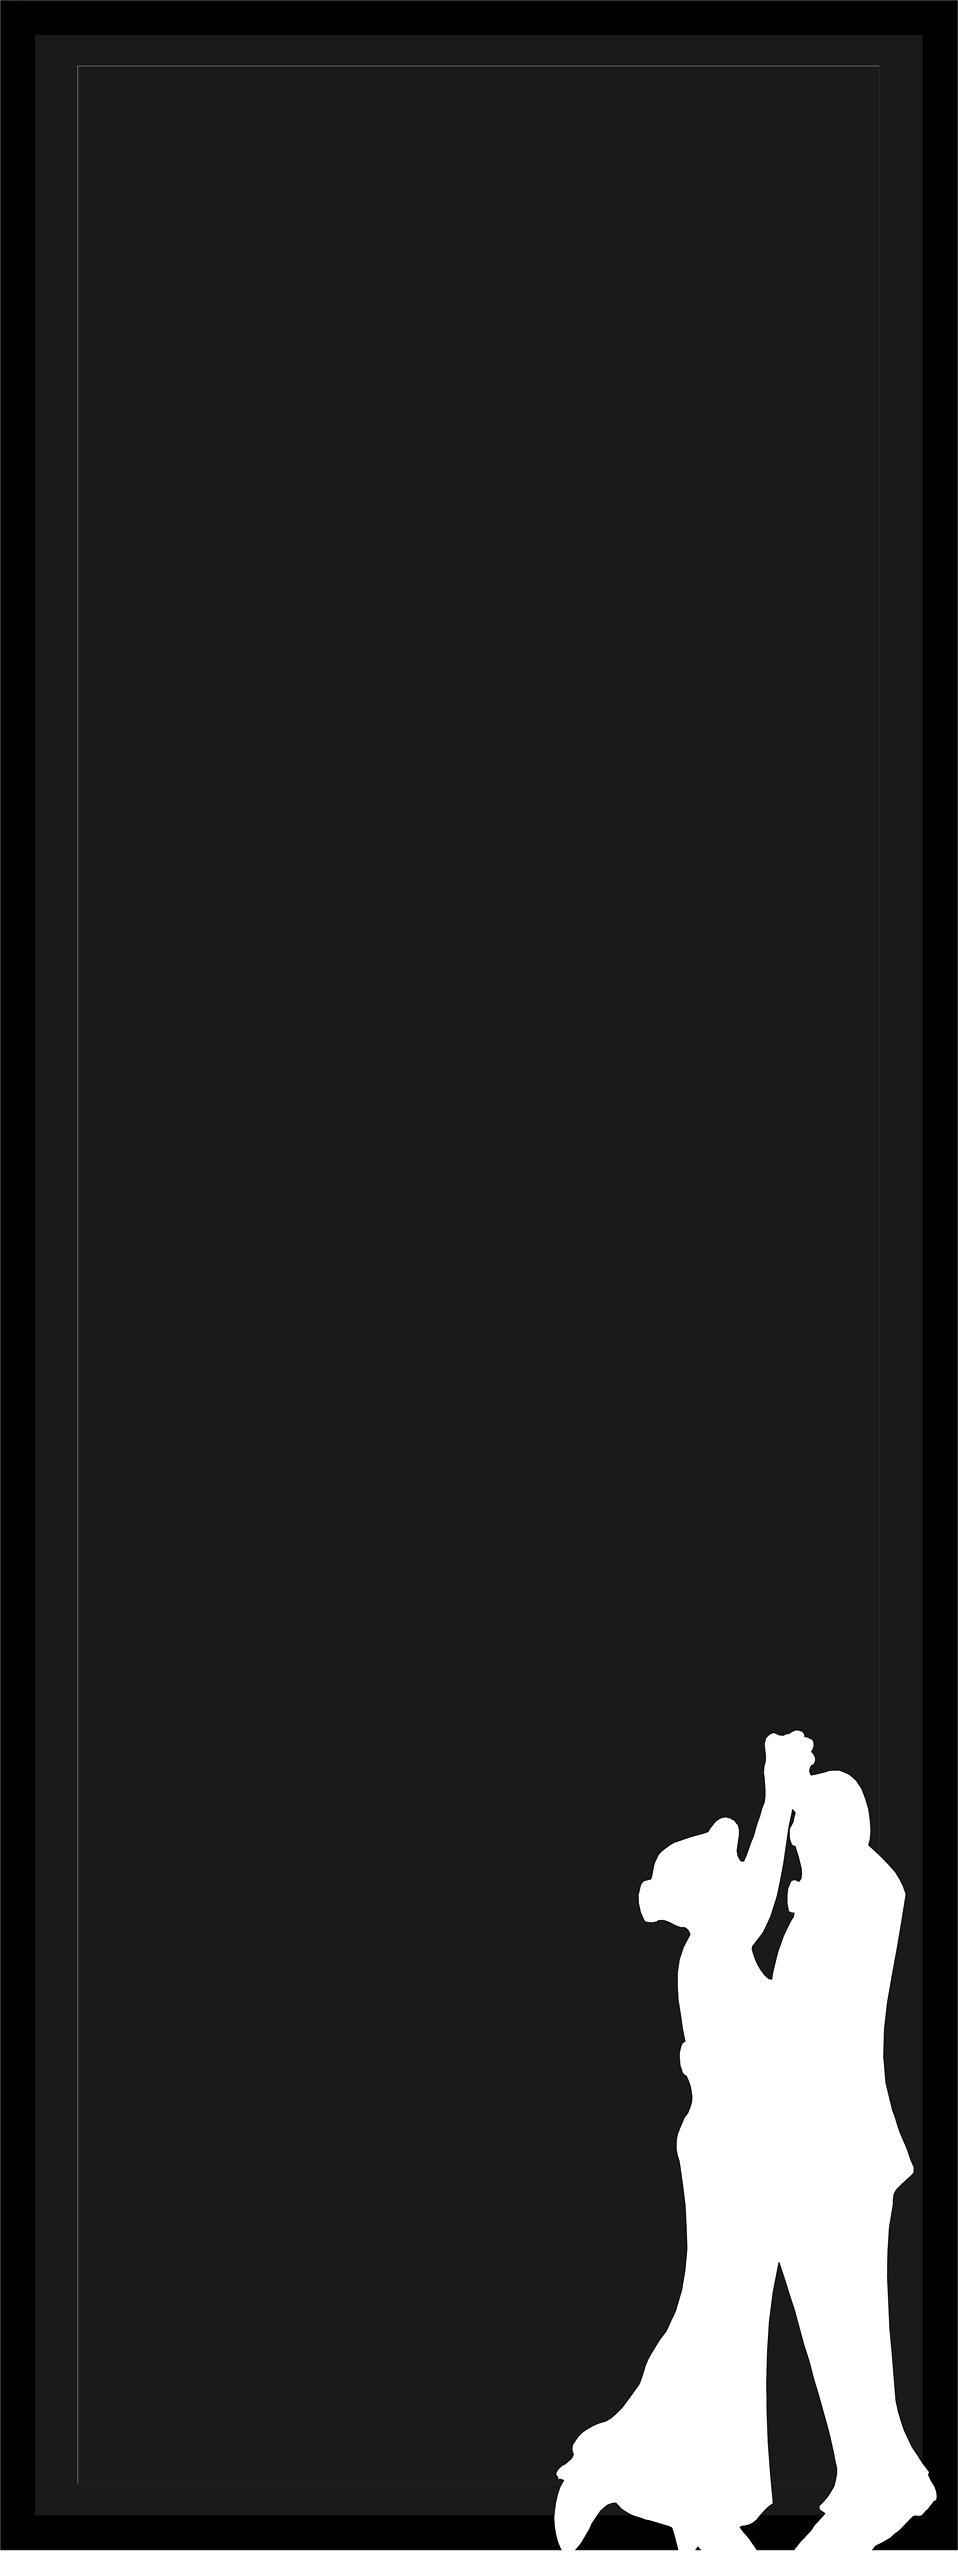 Illustration of a blank frame border with a silhouette of a dancing couple.